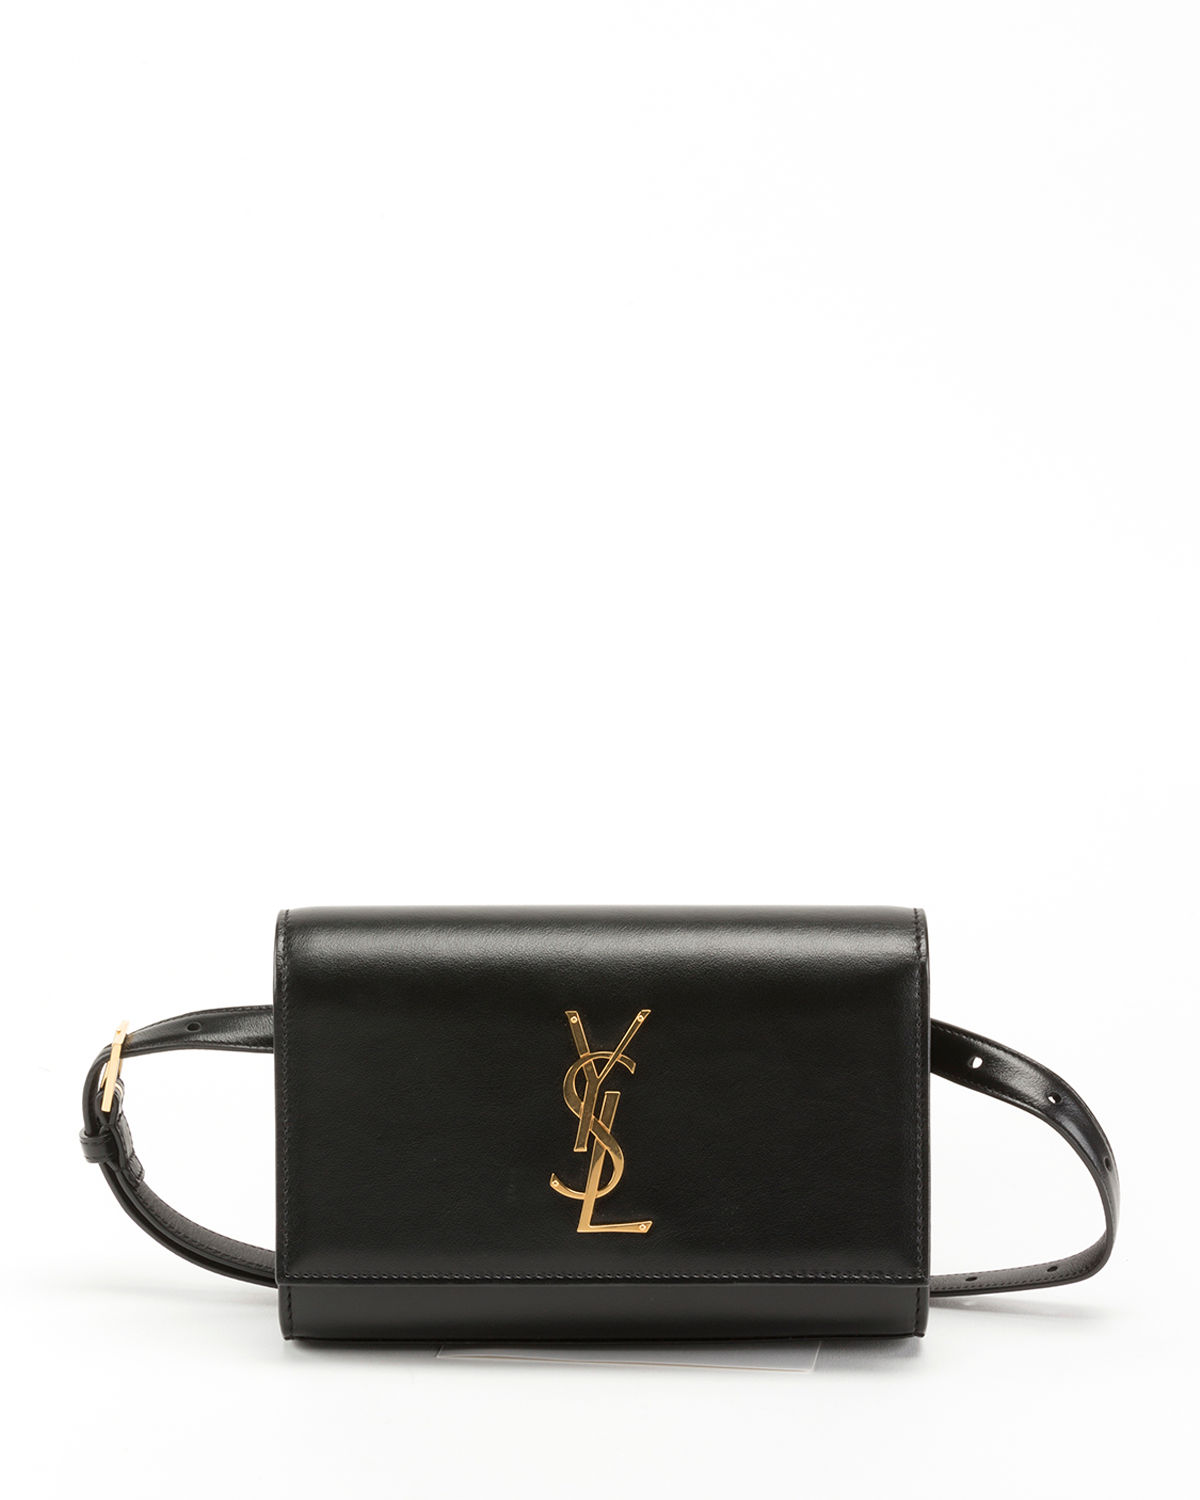 a9976f35da6 Saint Laurent Kate Monogram YSL Leather Belt Bag   Neiman Marcus